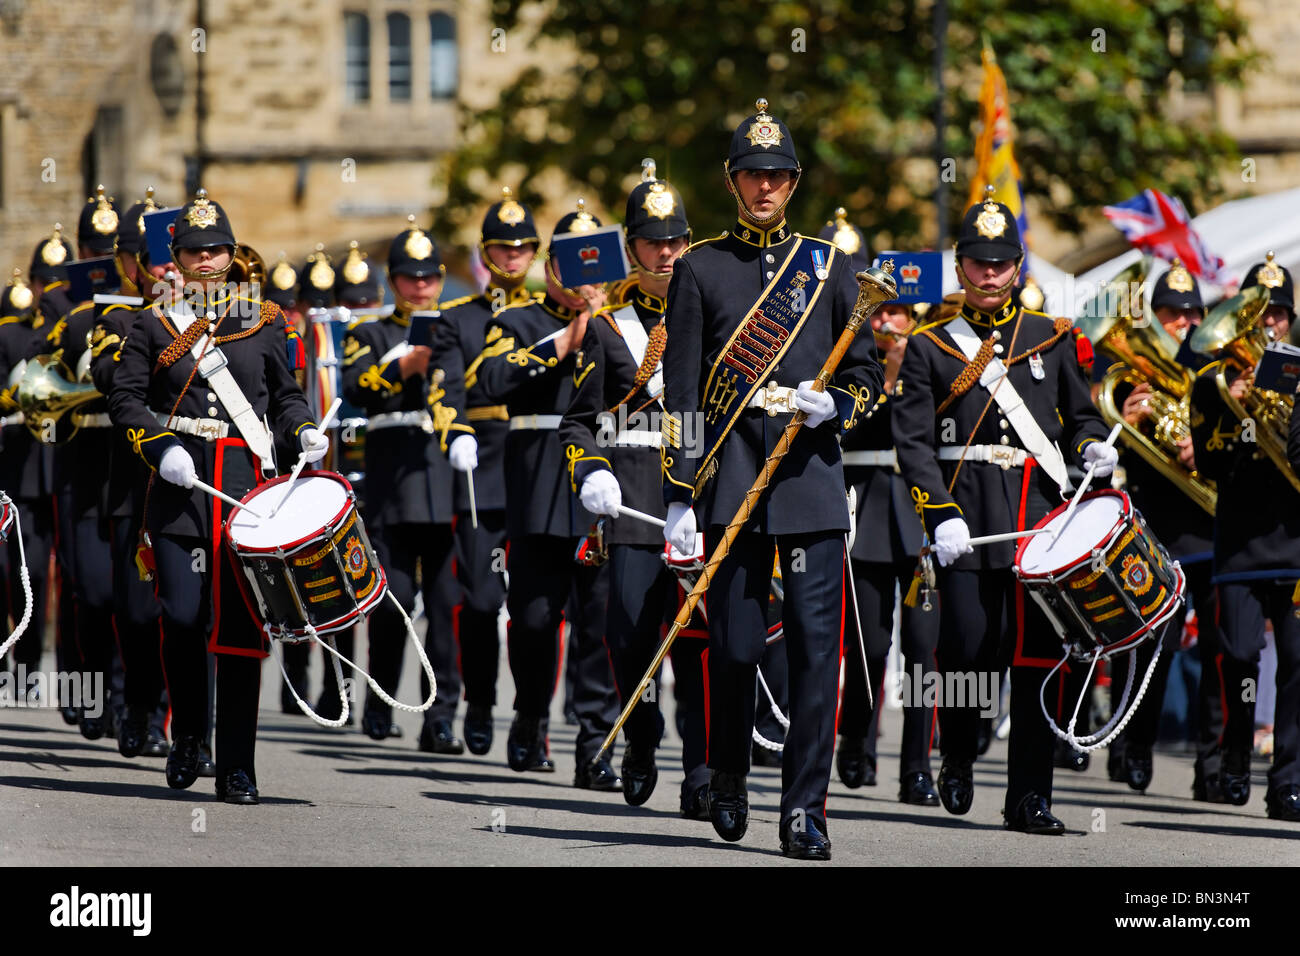 The Royal Logistic Corps Band on parade. - Stock Image